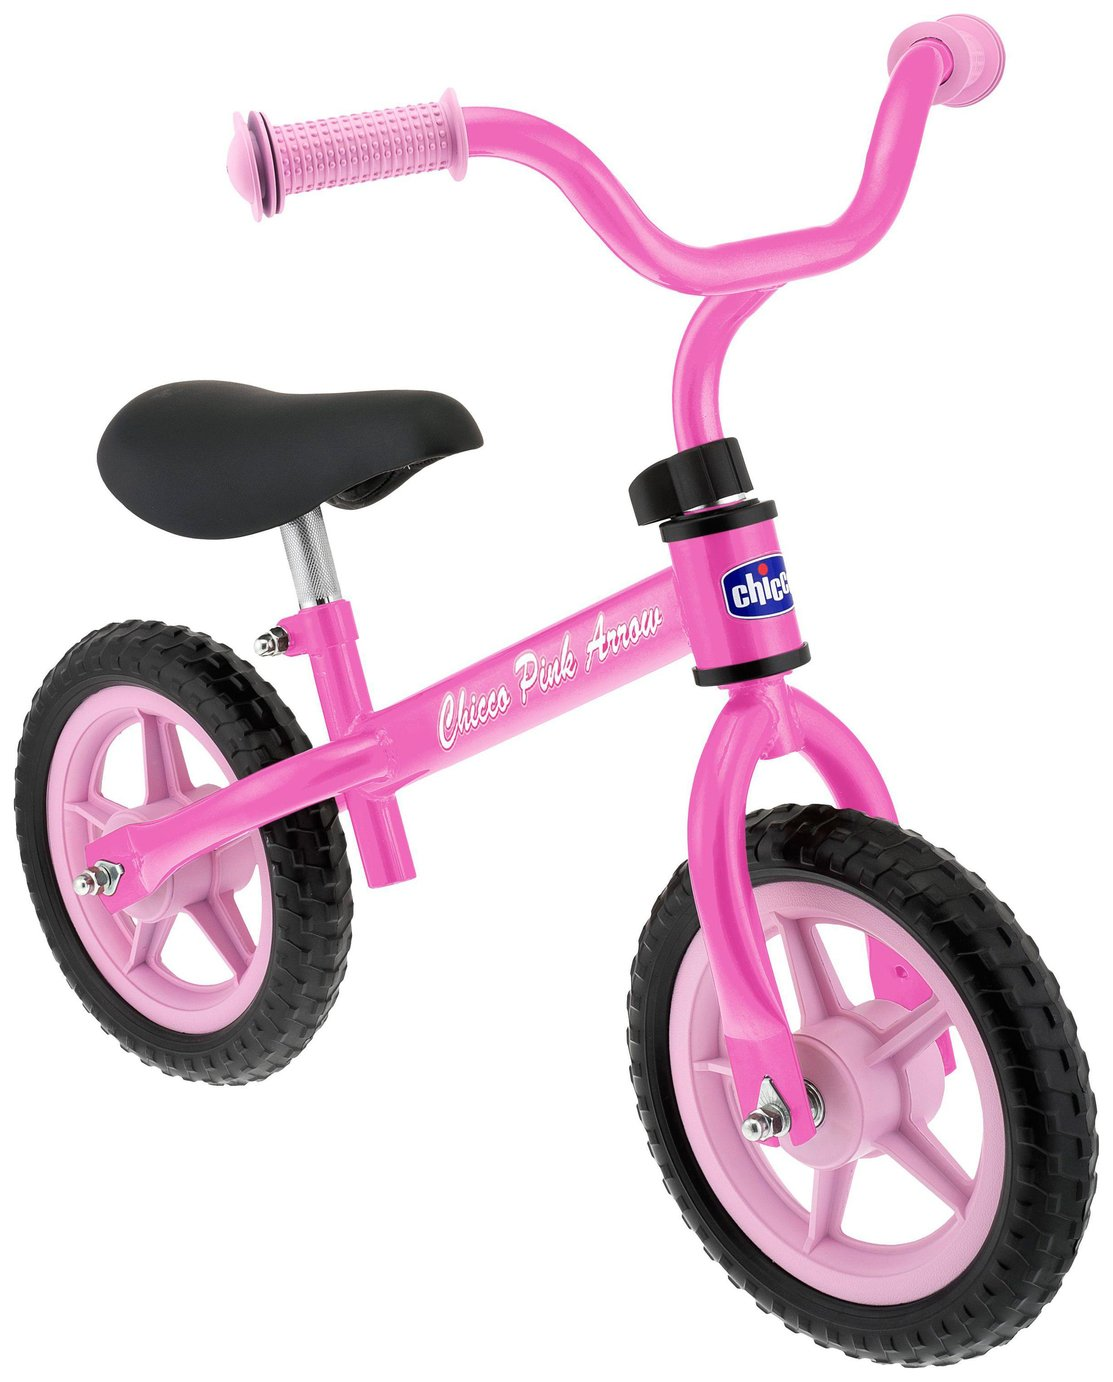 Chicco Pink Arrow Balance Bike.